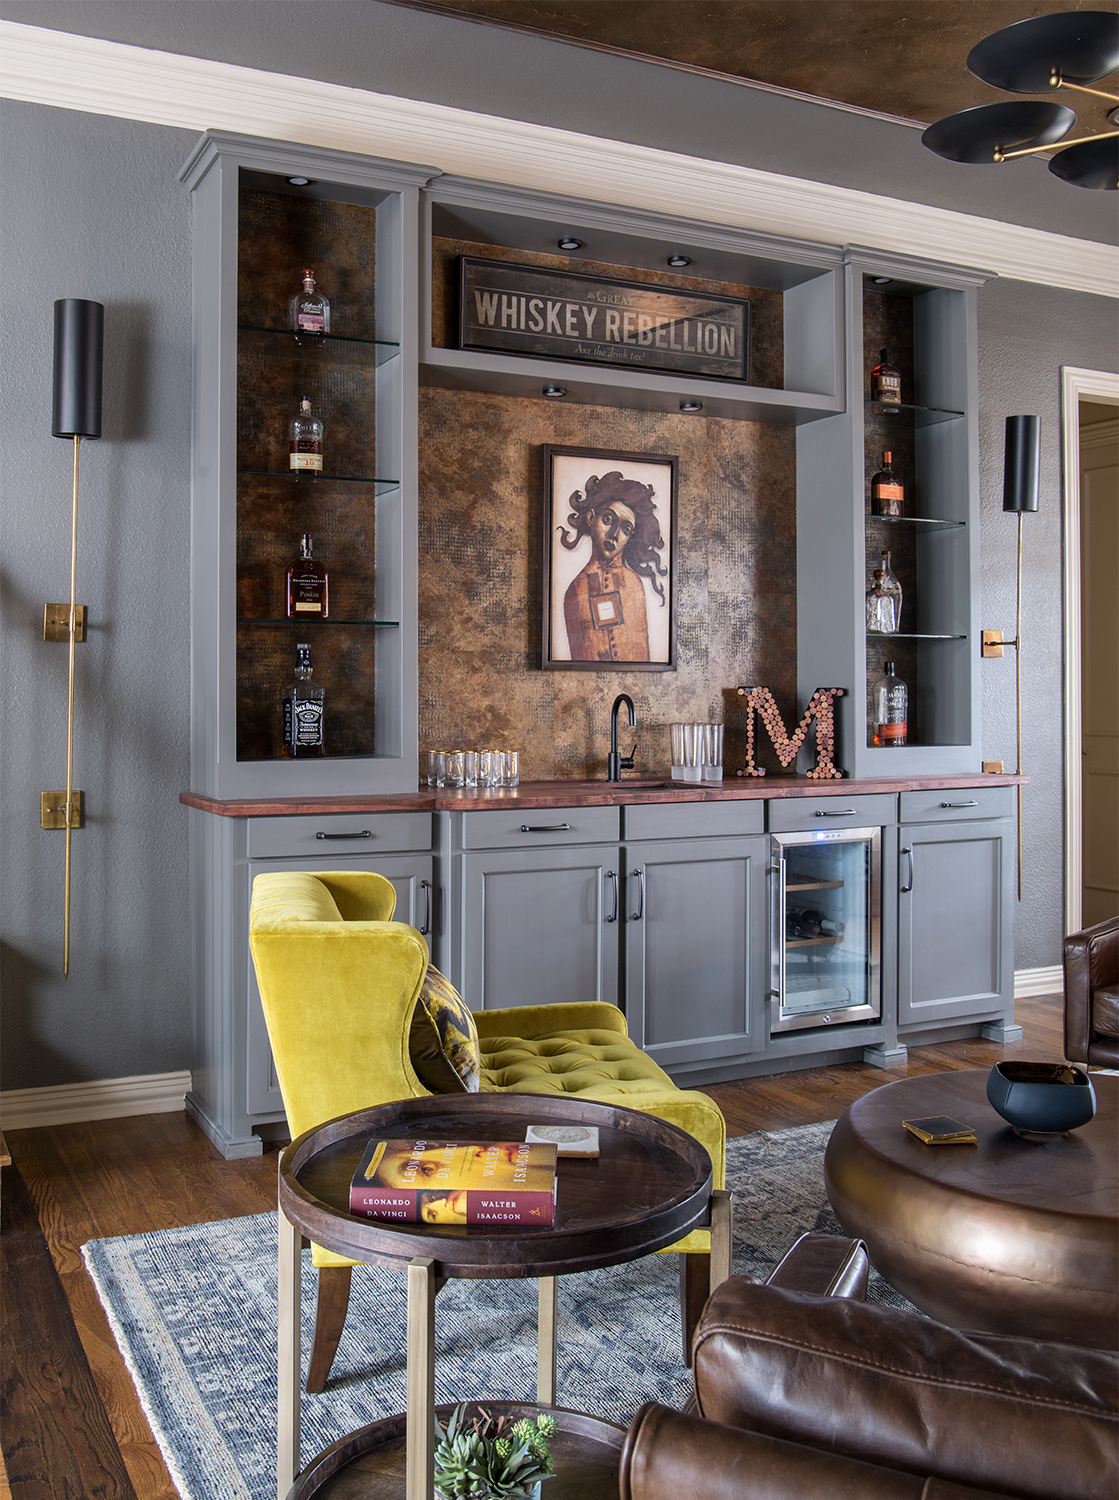 A whiskey lounge remodel in Keller, Texas